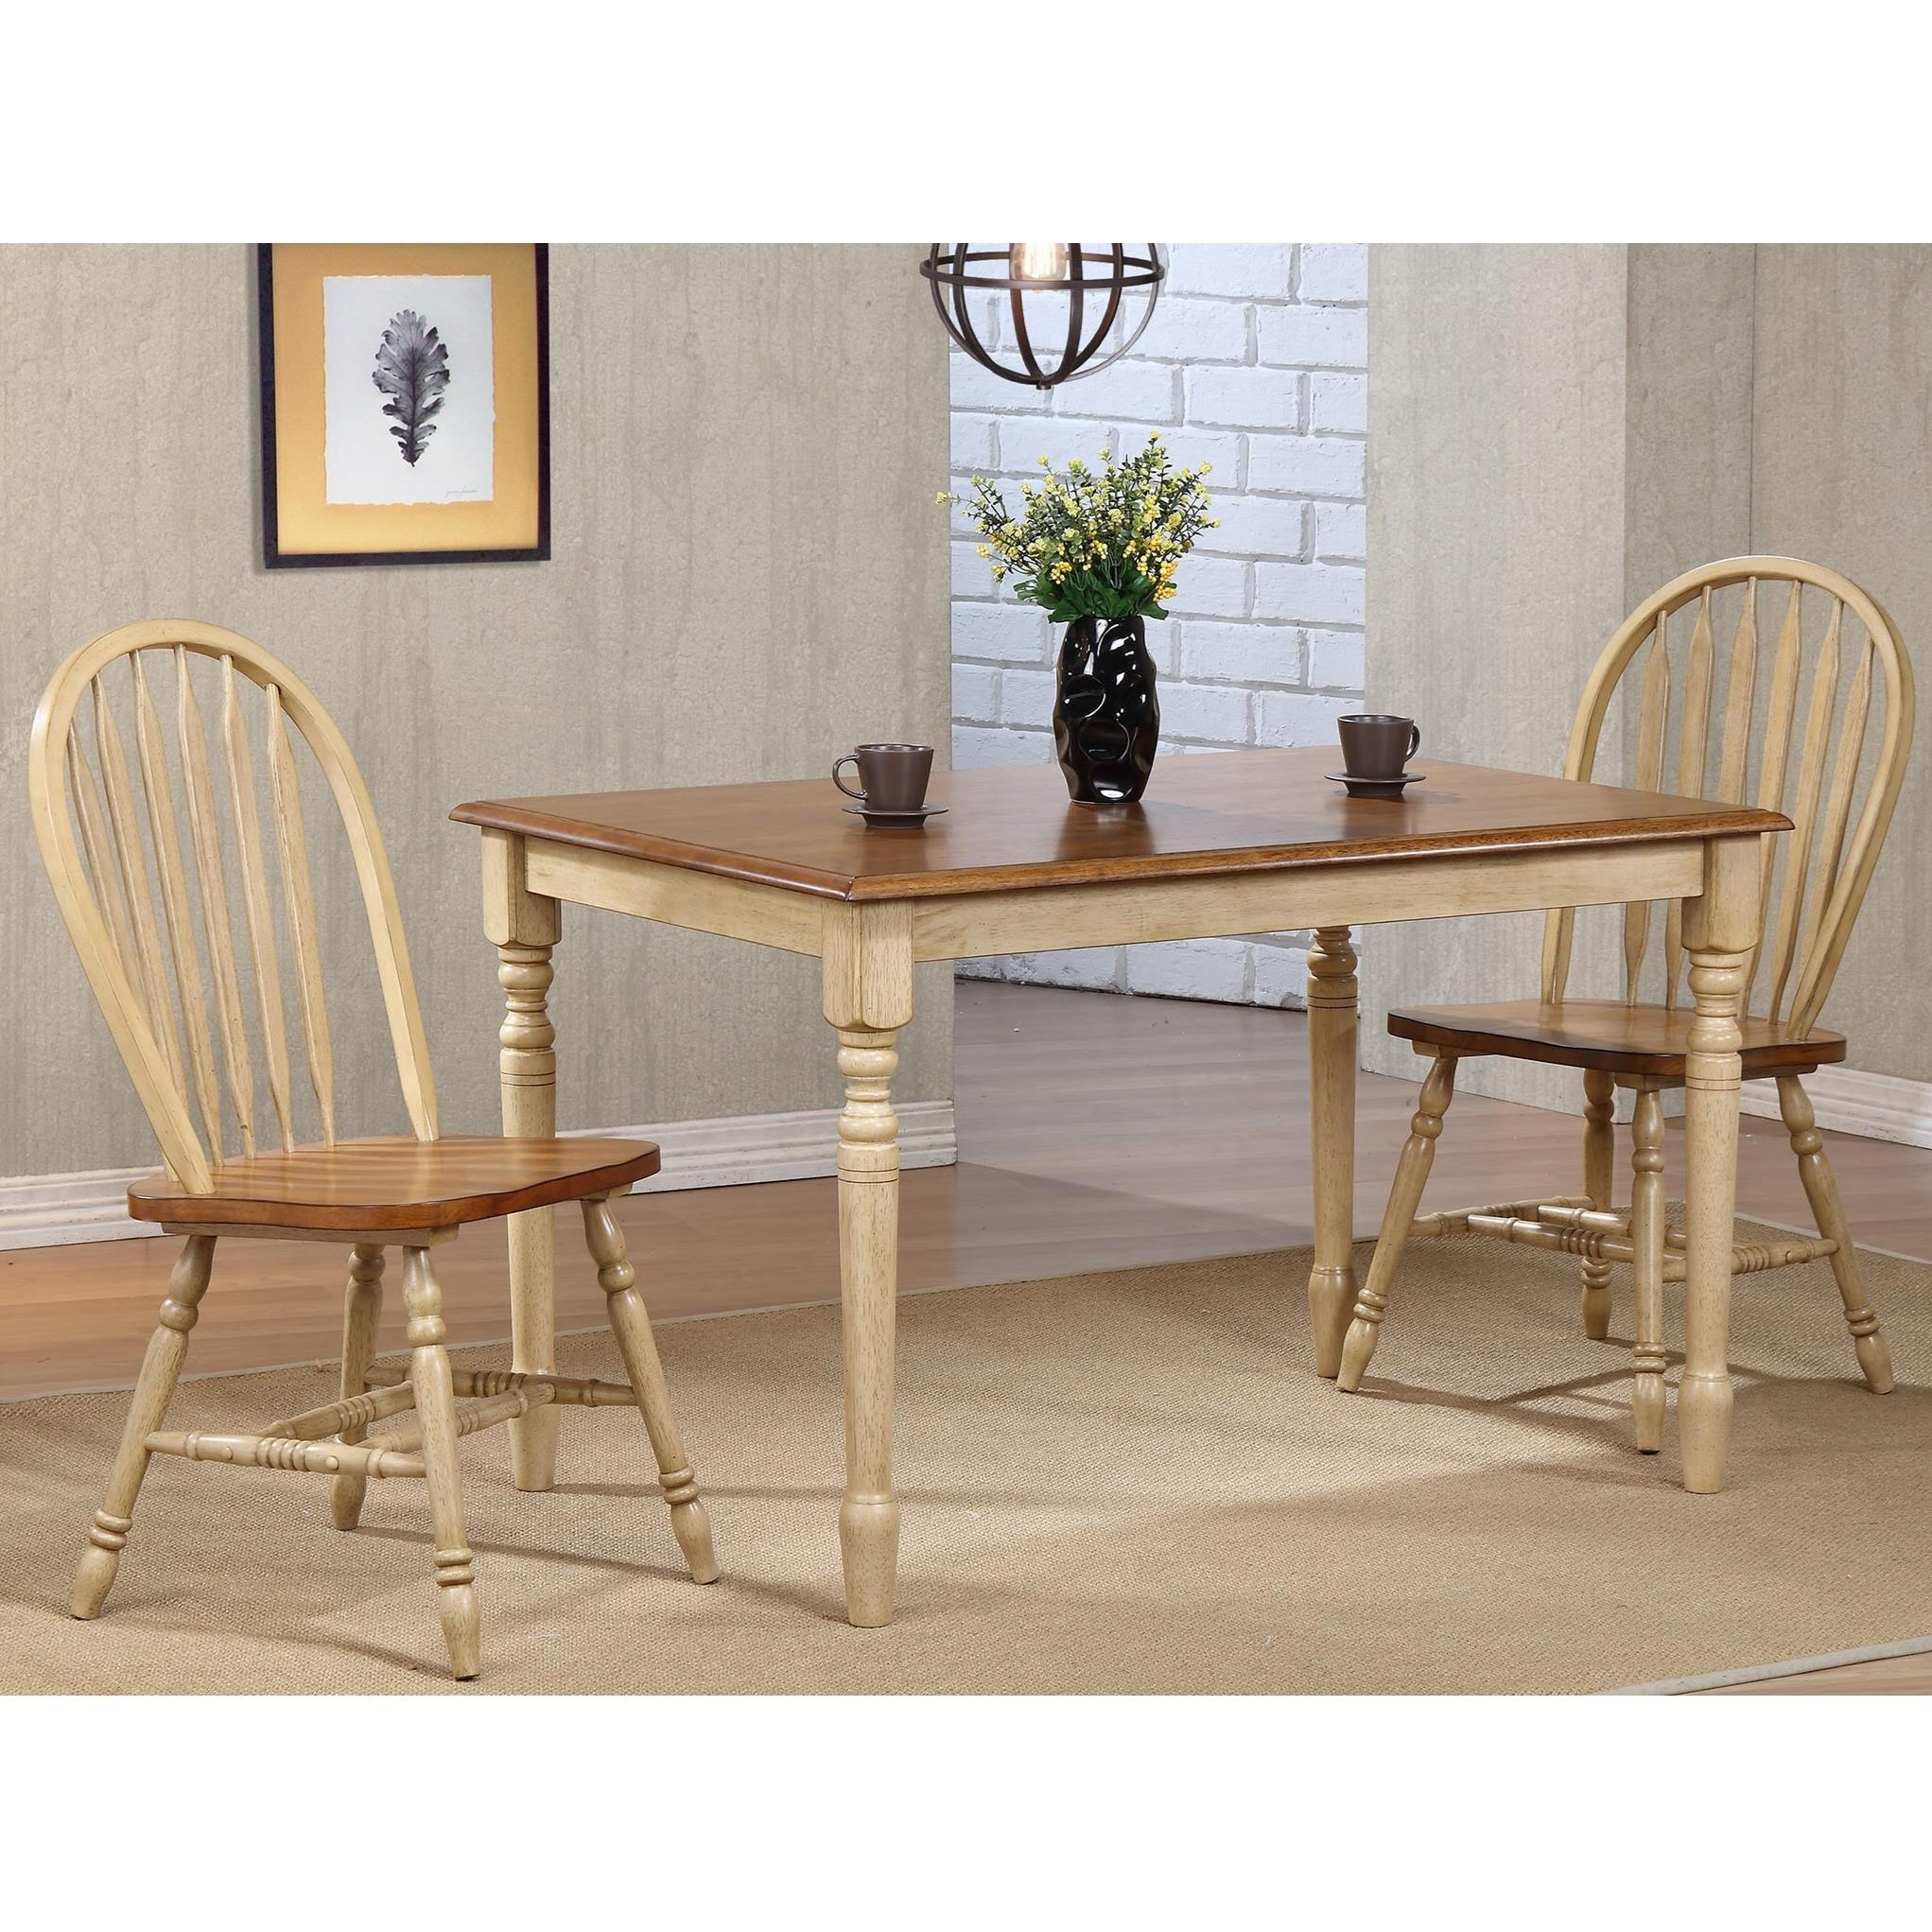 Where Is Winners Only Furniture Made: Winners Only Farmington 3 Piece Dining Set